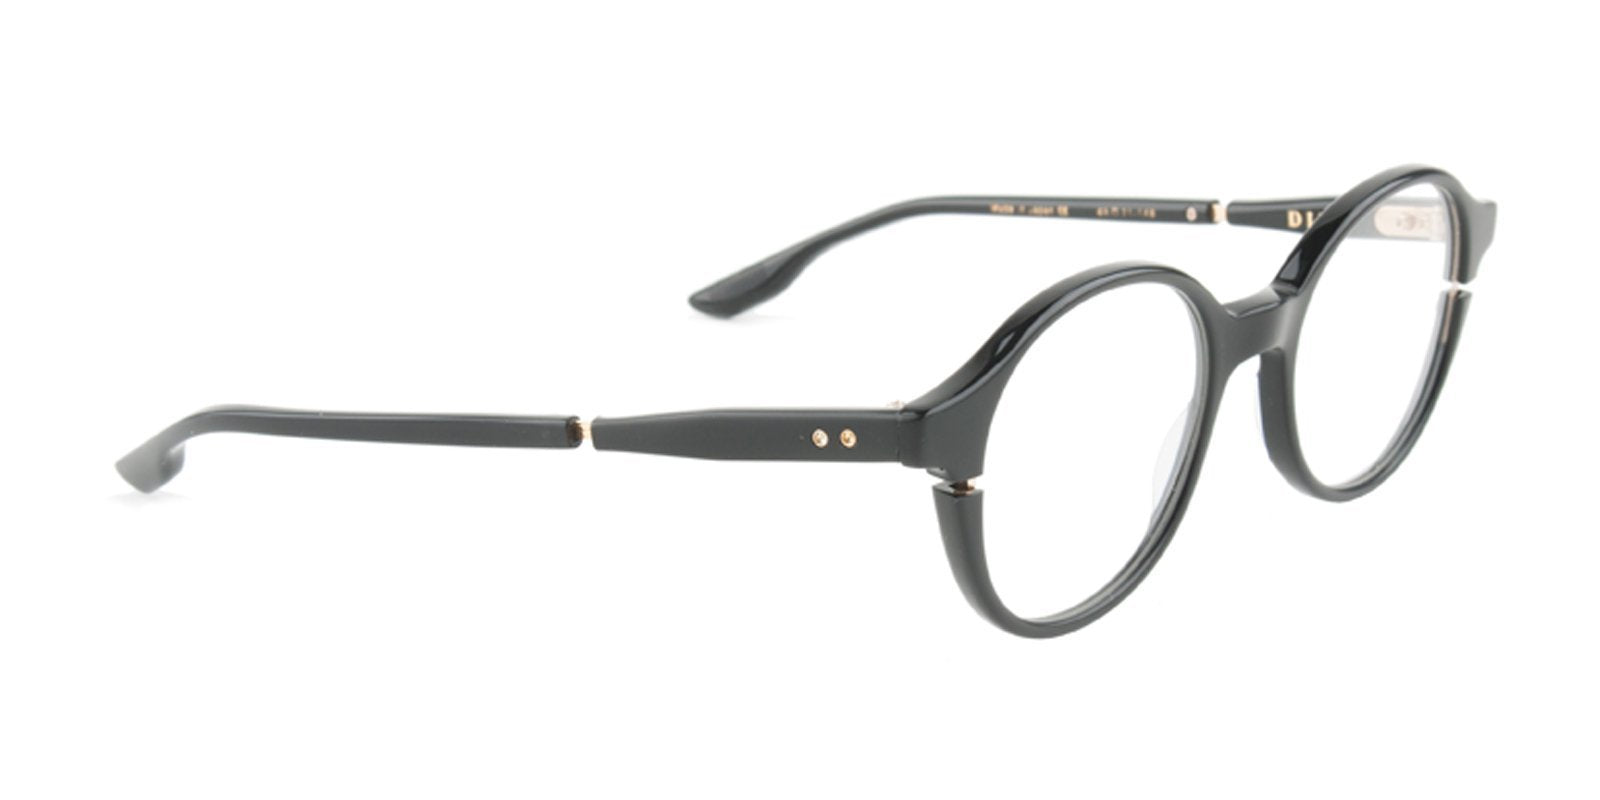 Dita - Siglo Black Oval Unisex Eyeglasses - 48mm-Eyeglasses-Designer Eyes